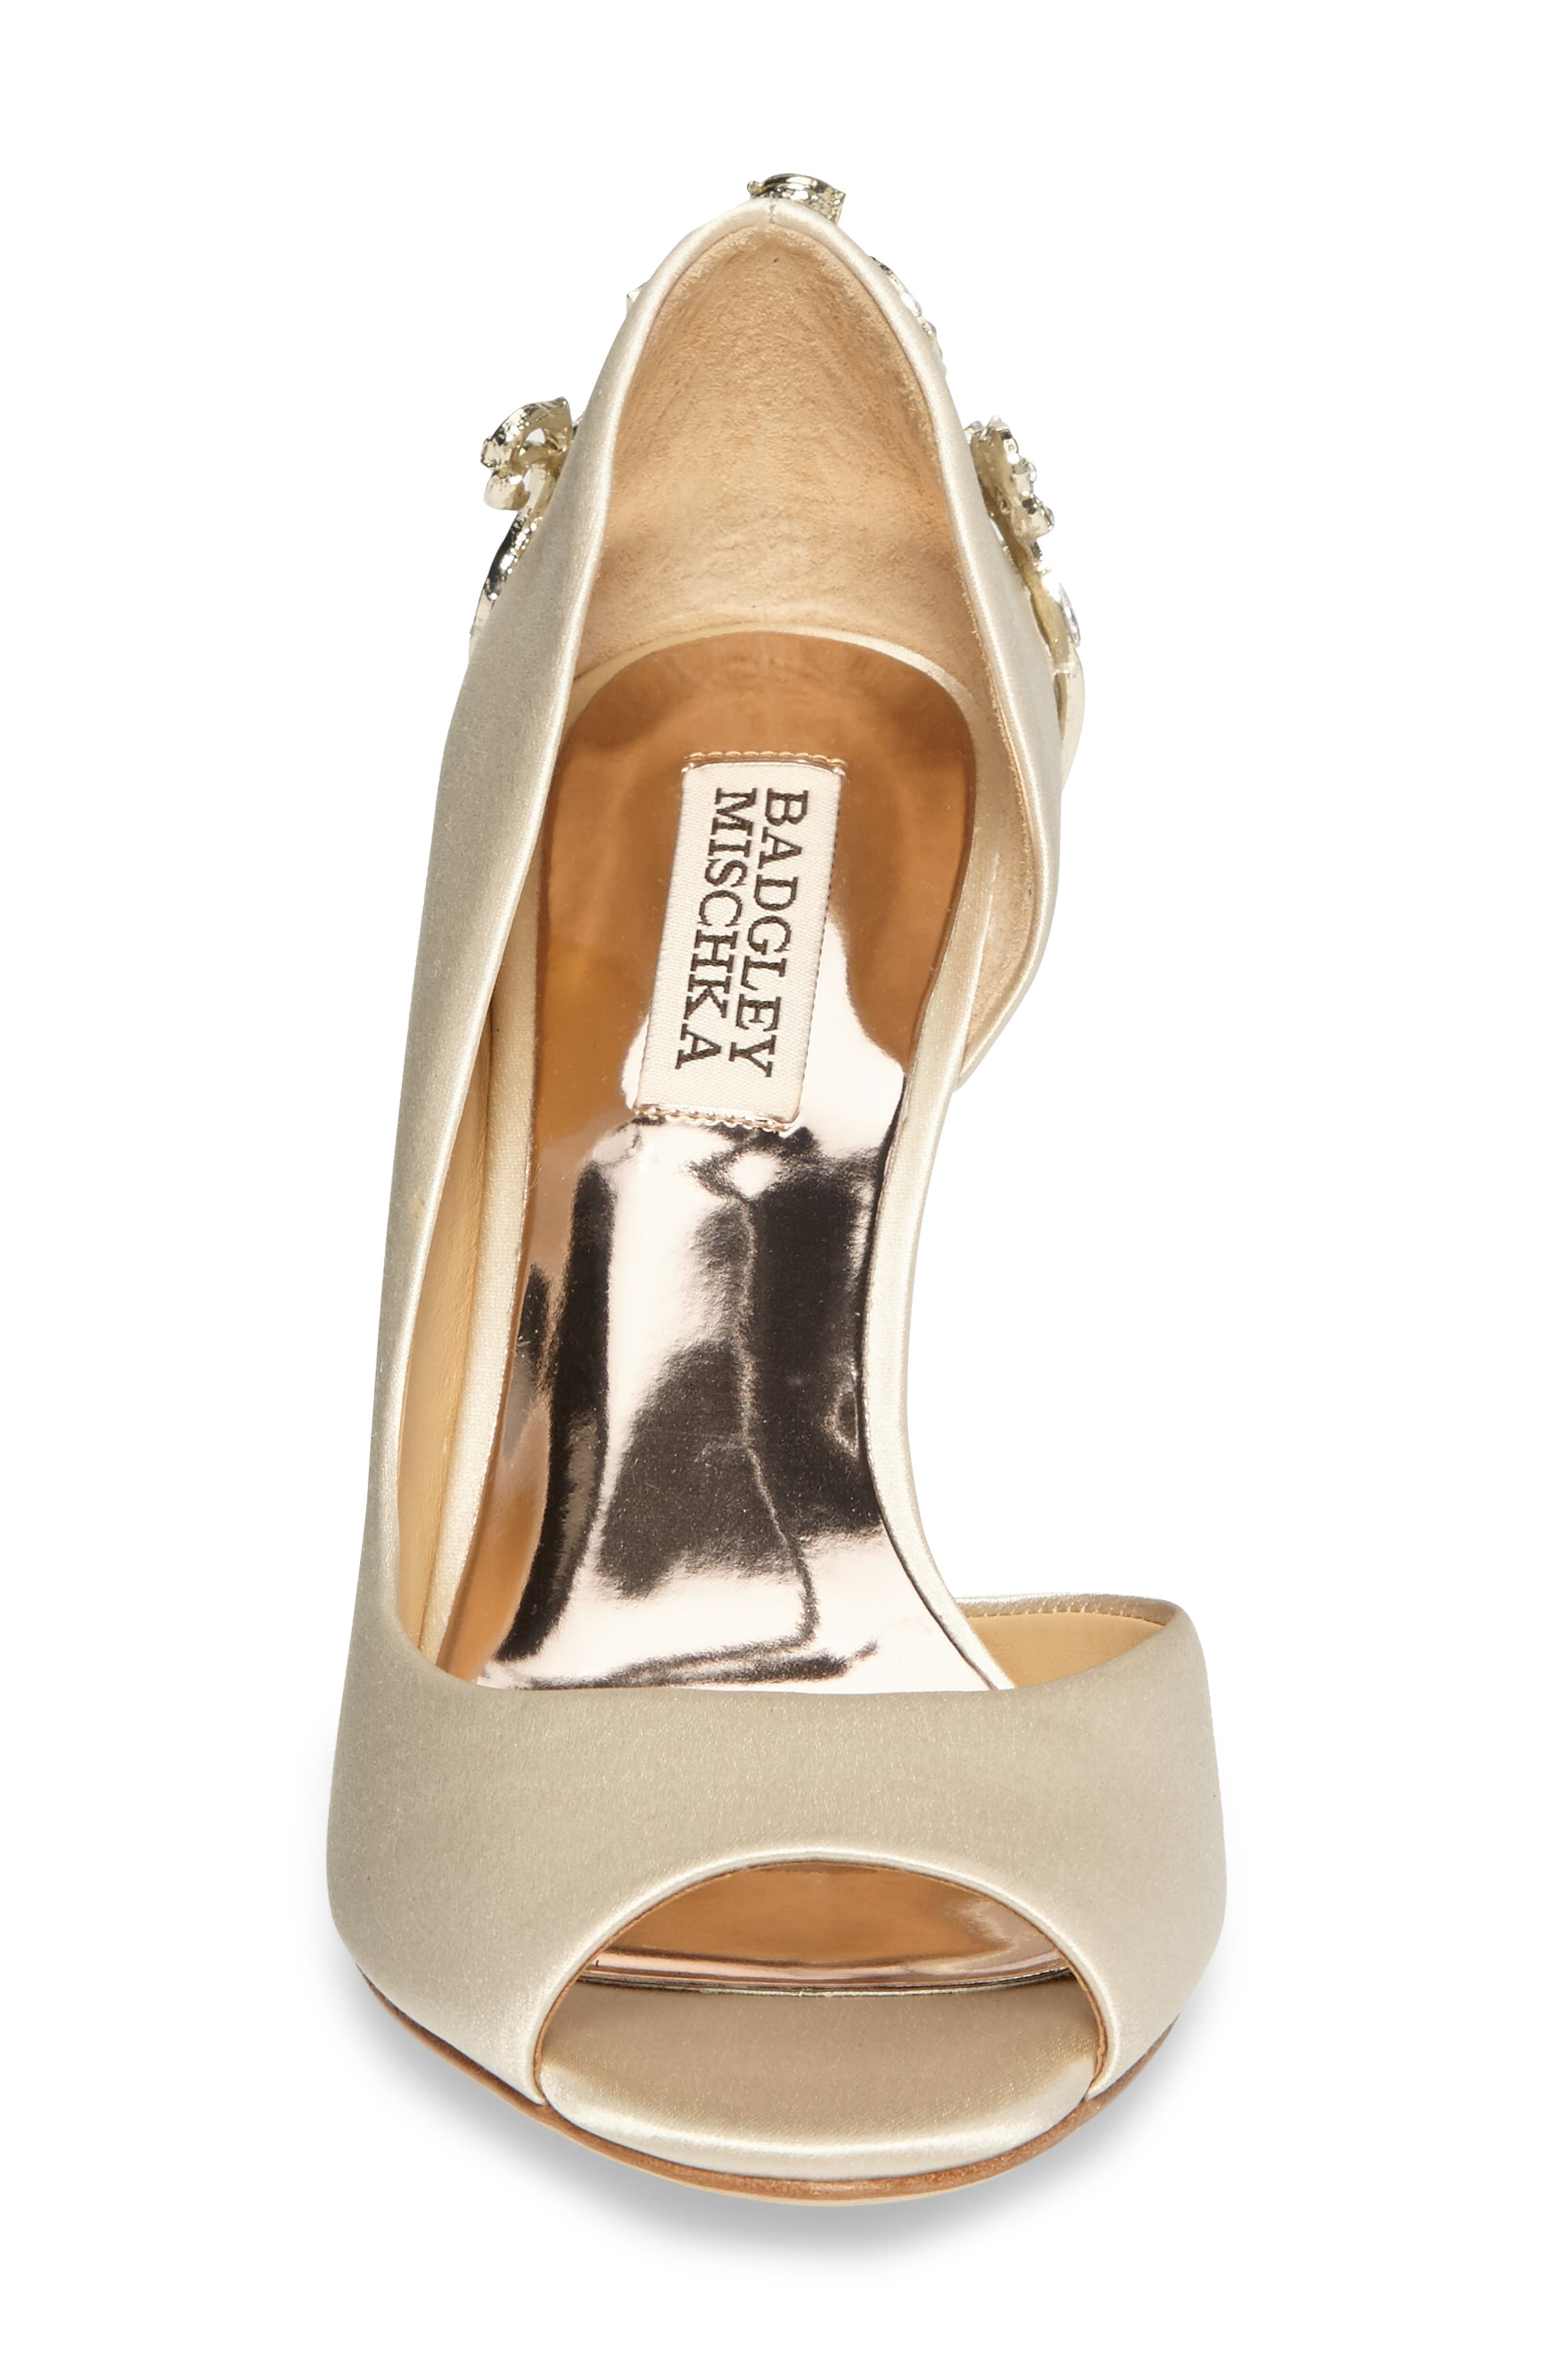 Meagan Embellished Peep Toe Wedge,                             Alternate thumbnail 4, color,                             IVORY SATIN